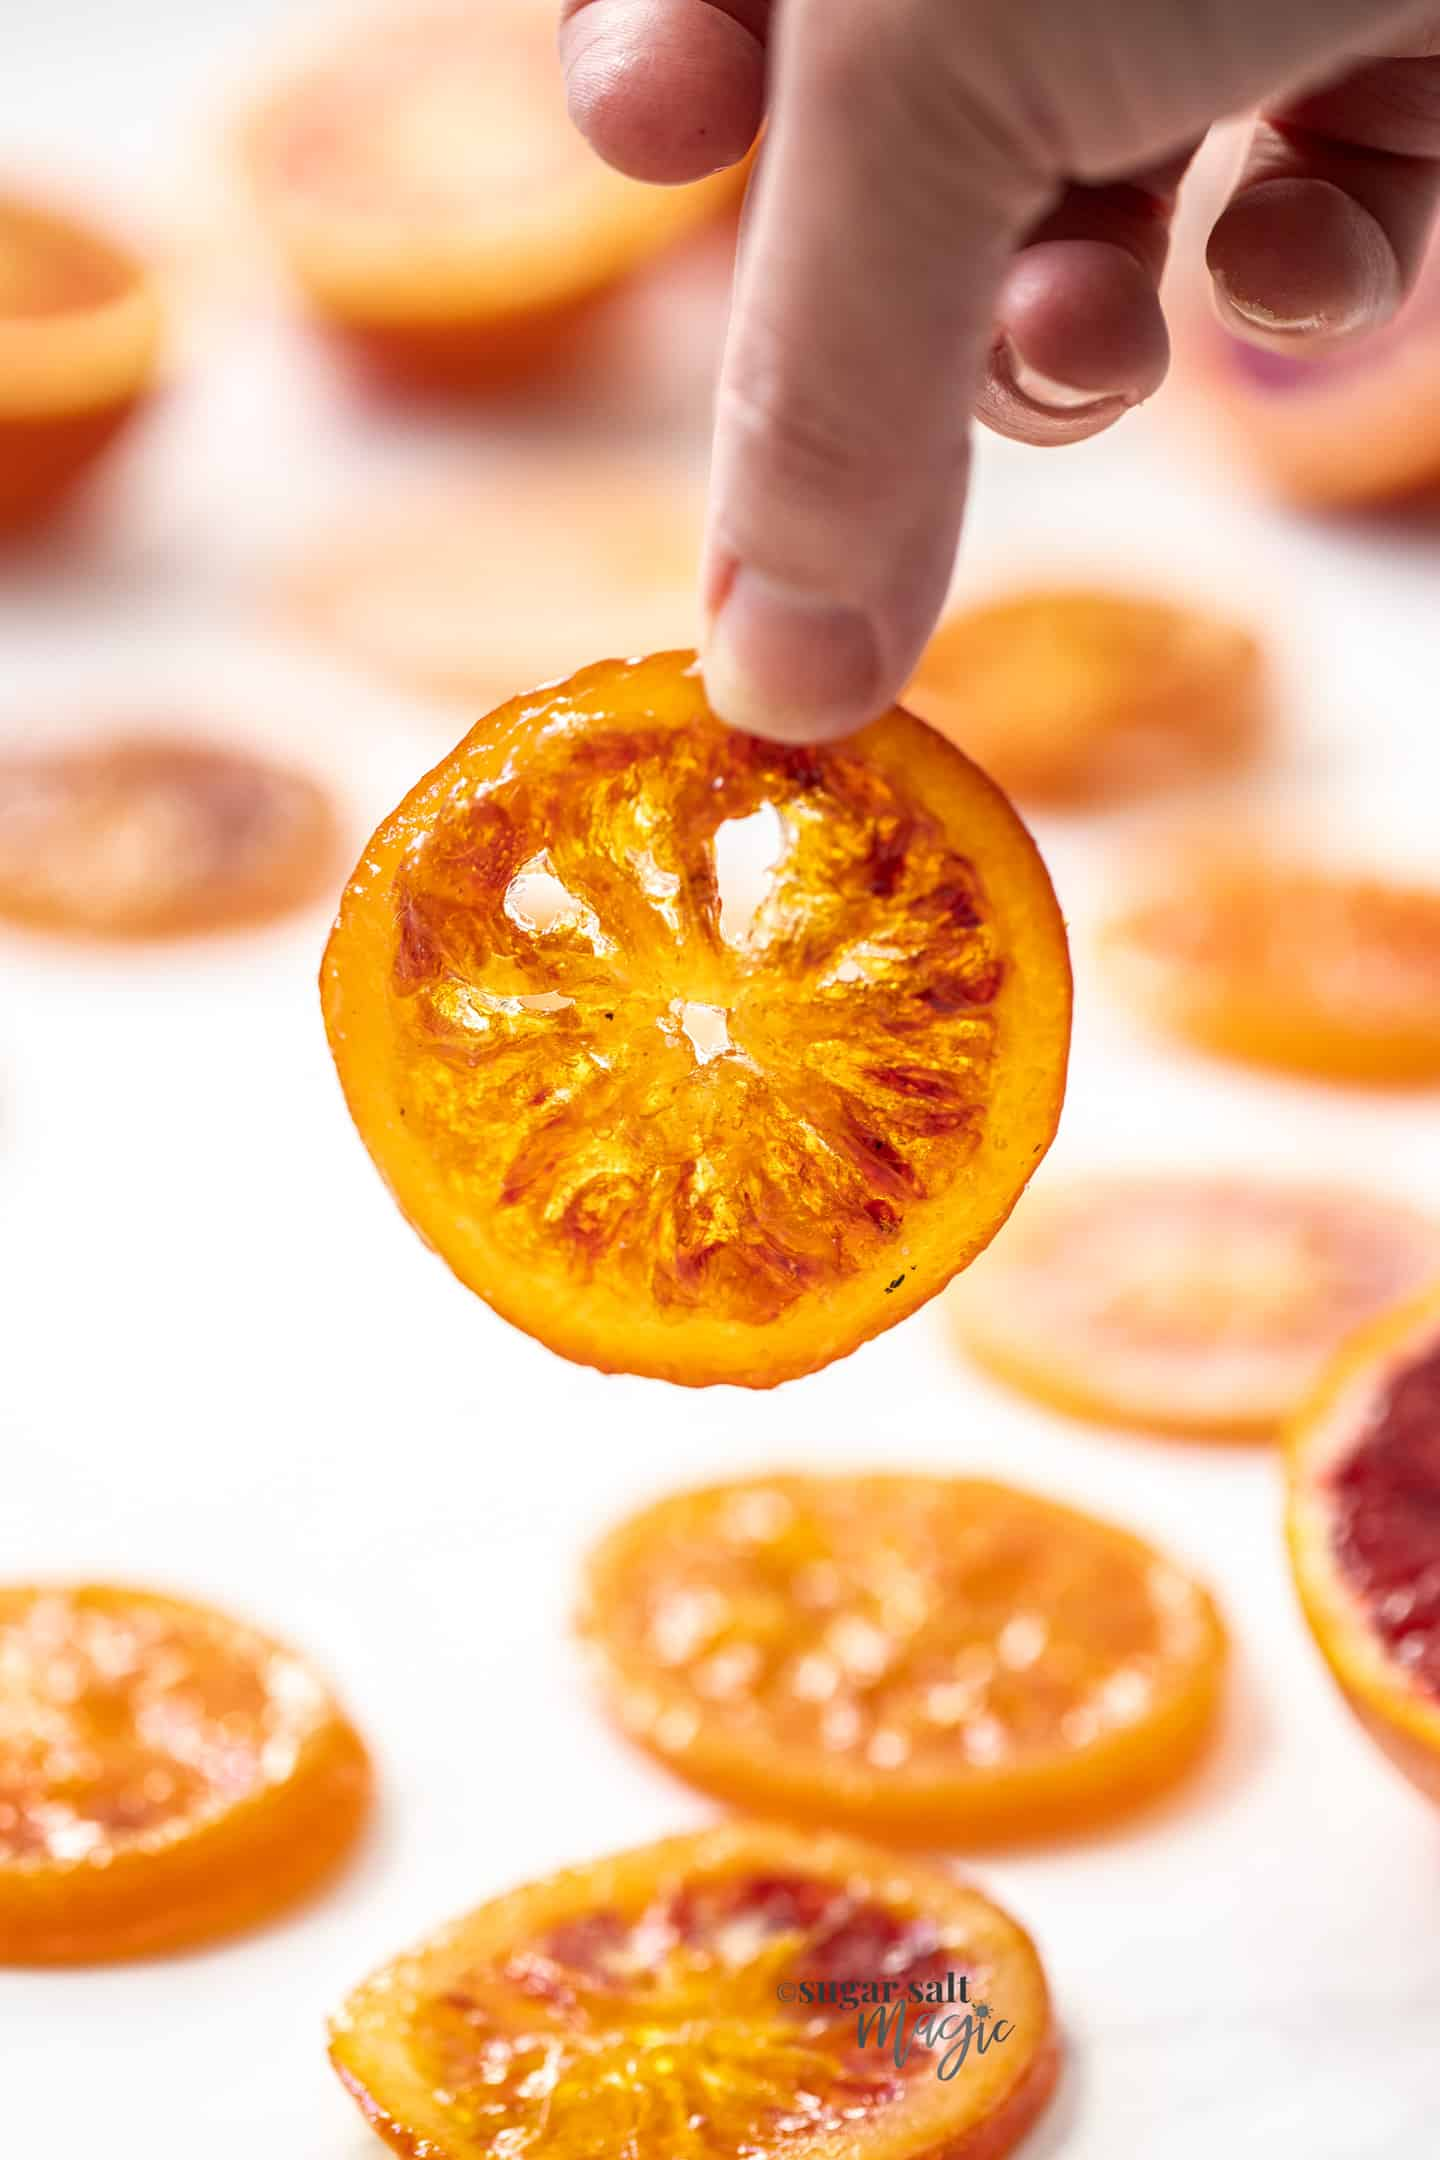 A hand holding up a candied orange slice in the light.